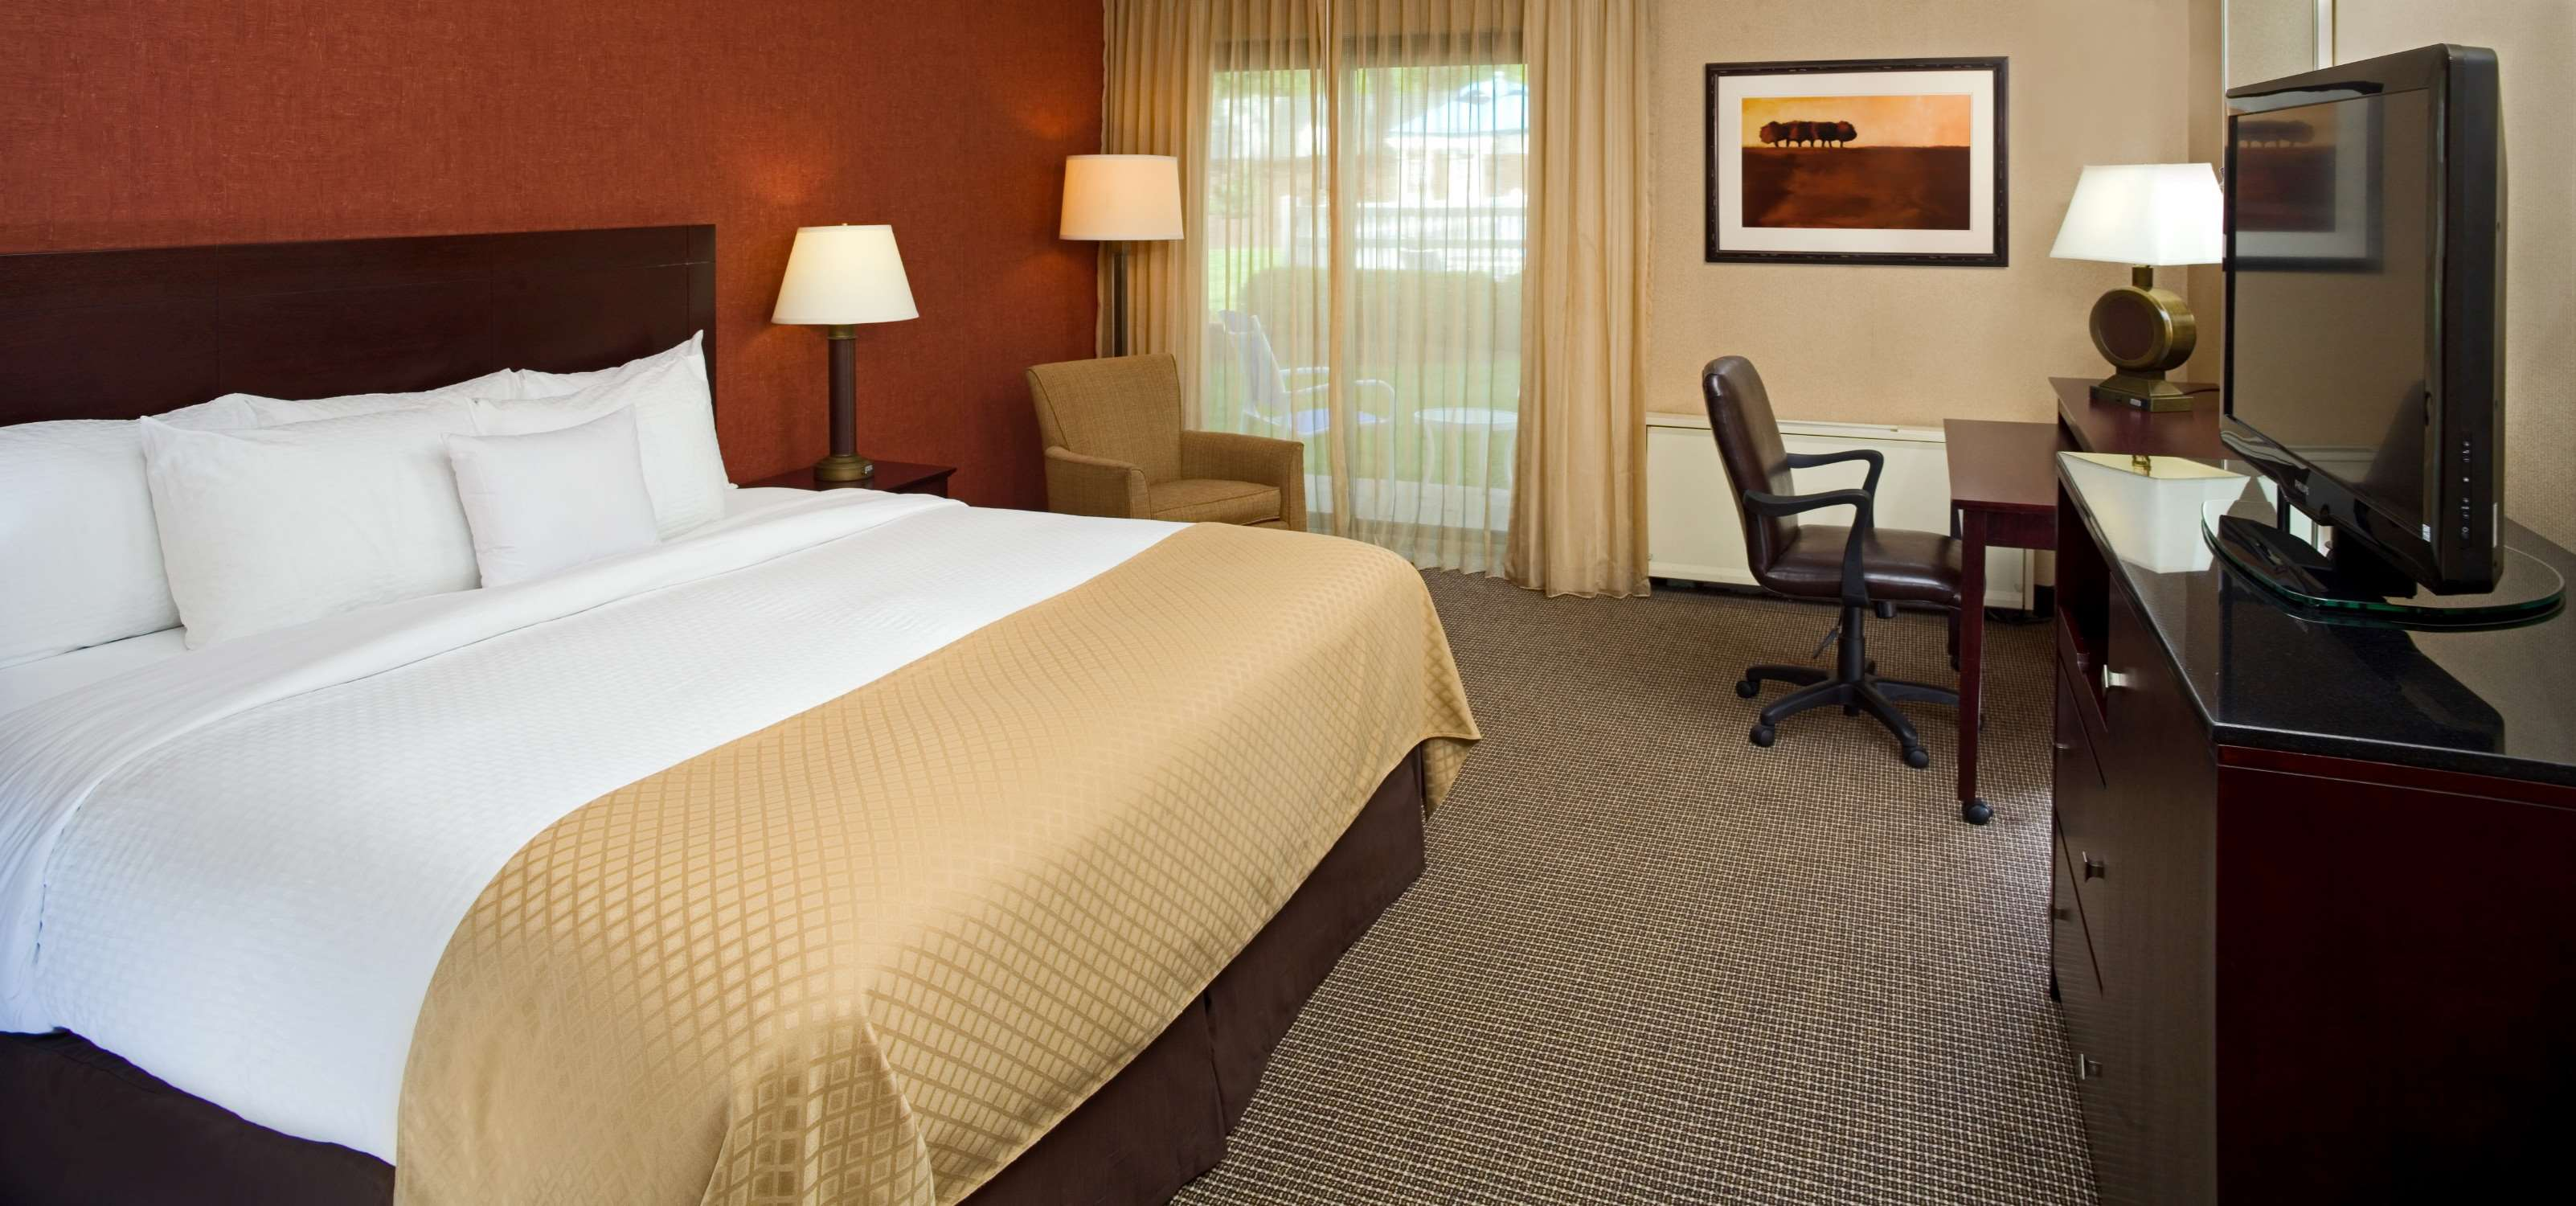 DoubleTree by Hilton Hotel Pittsburgh - Meadow Lands image 16